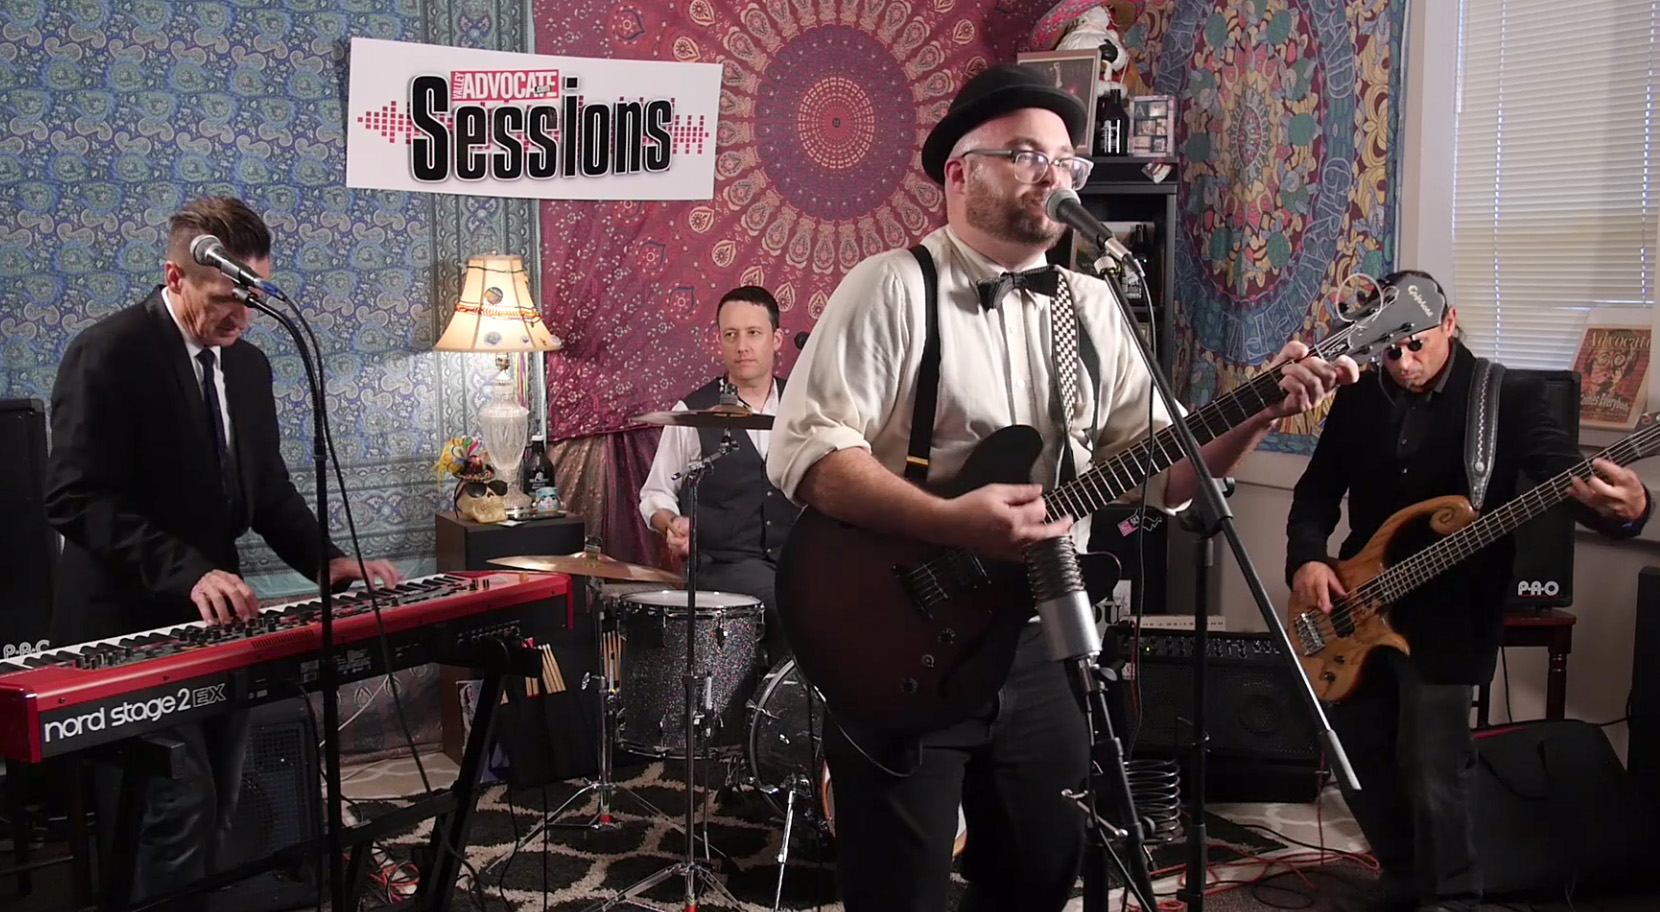 Reverend Dan and the Dirty Catechism on Advocate Sessions Stage